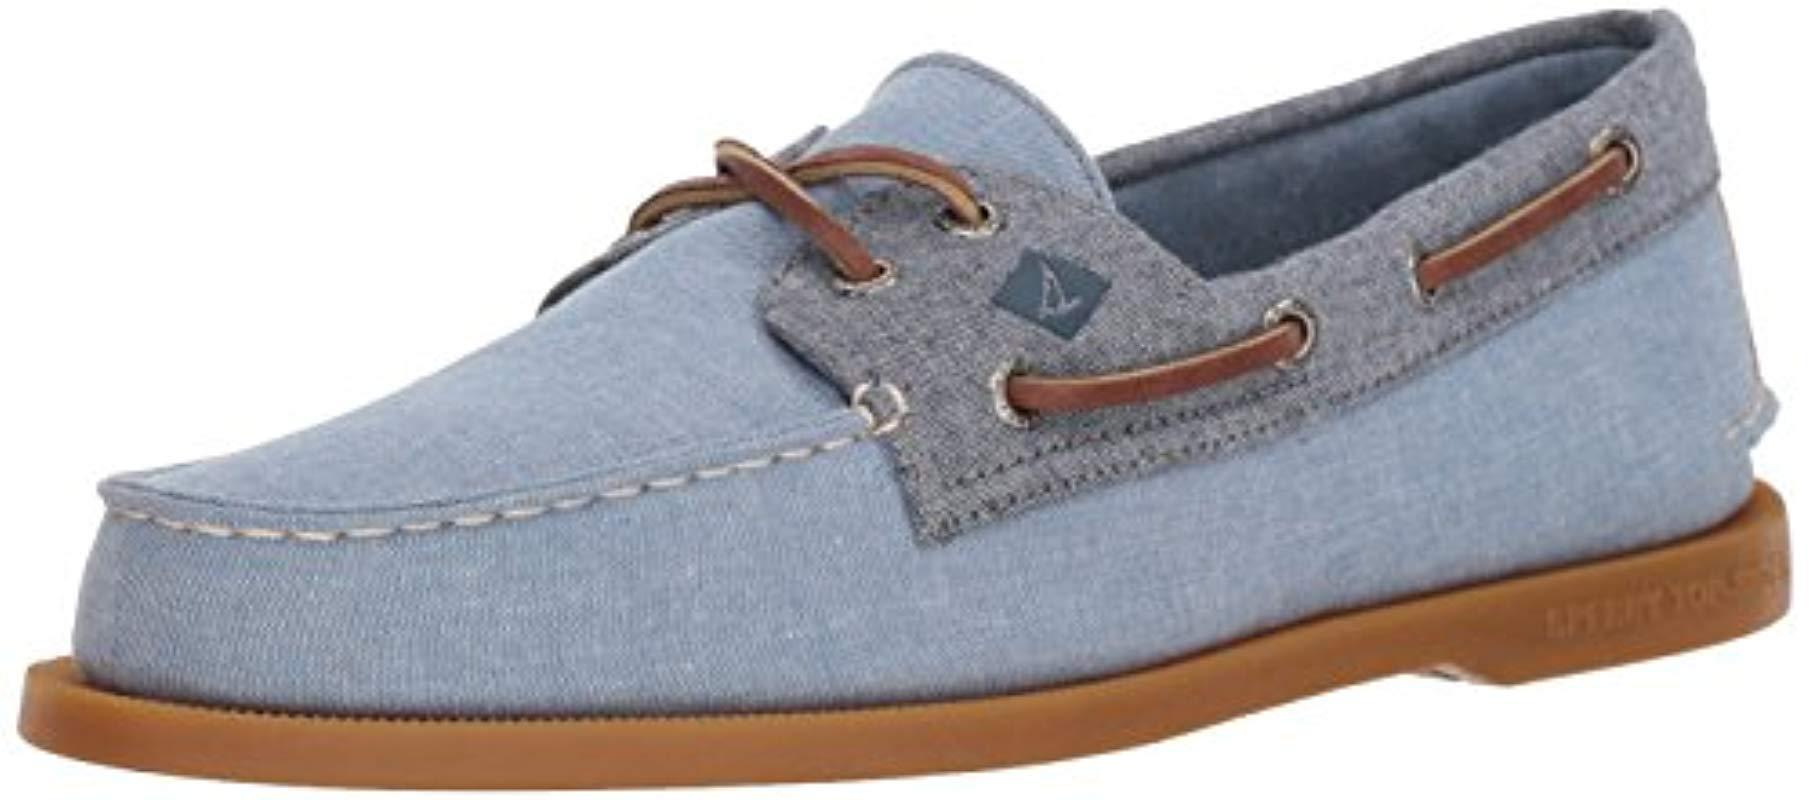 Lyst Sperry Top Sider A O 2 Eye Chambray Chino Chocolate Mens D Island Shoes Moccasine Slip On Lacoste Suede Blue View Fullscreen